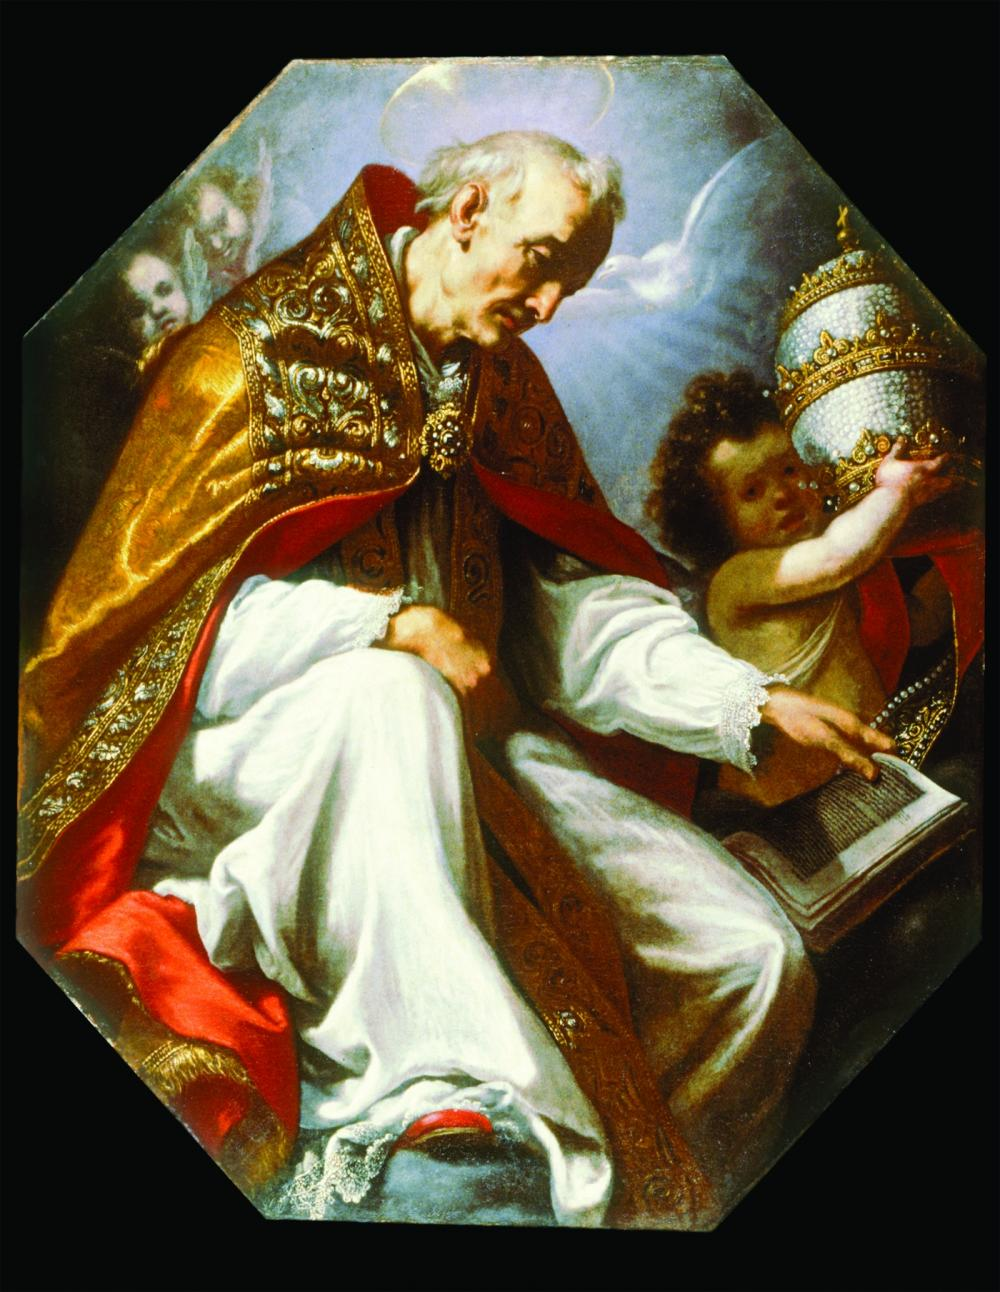 Prayer of St. Gregory the Great